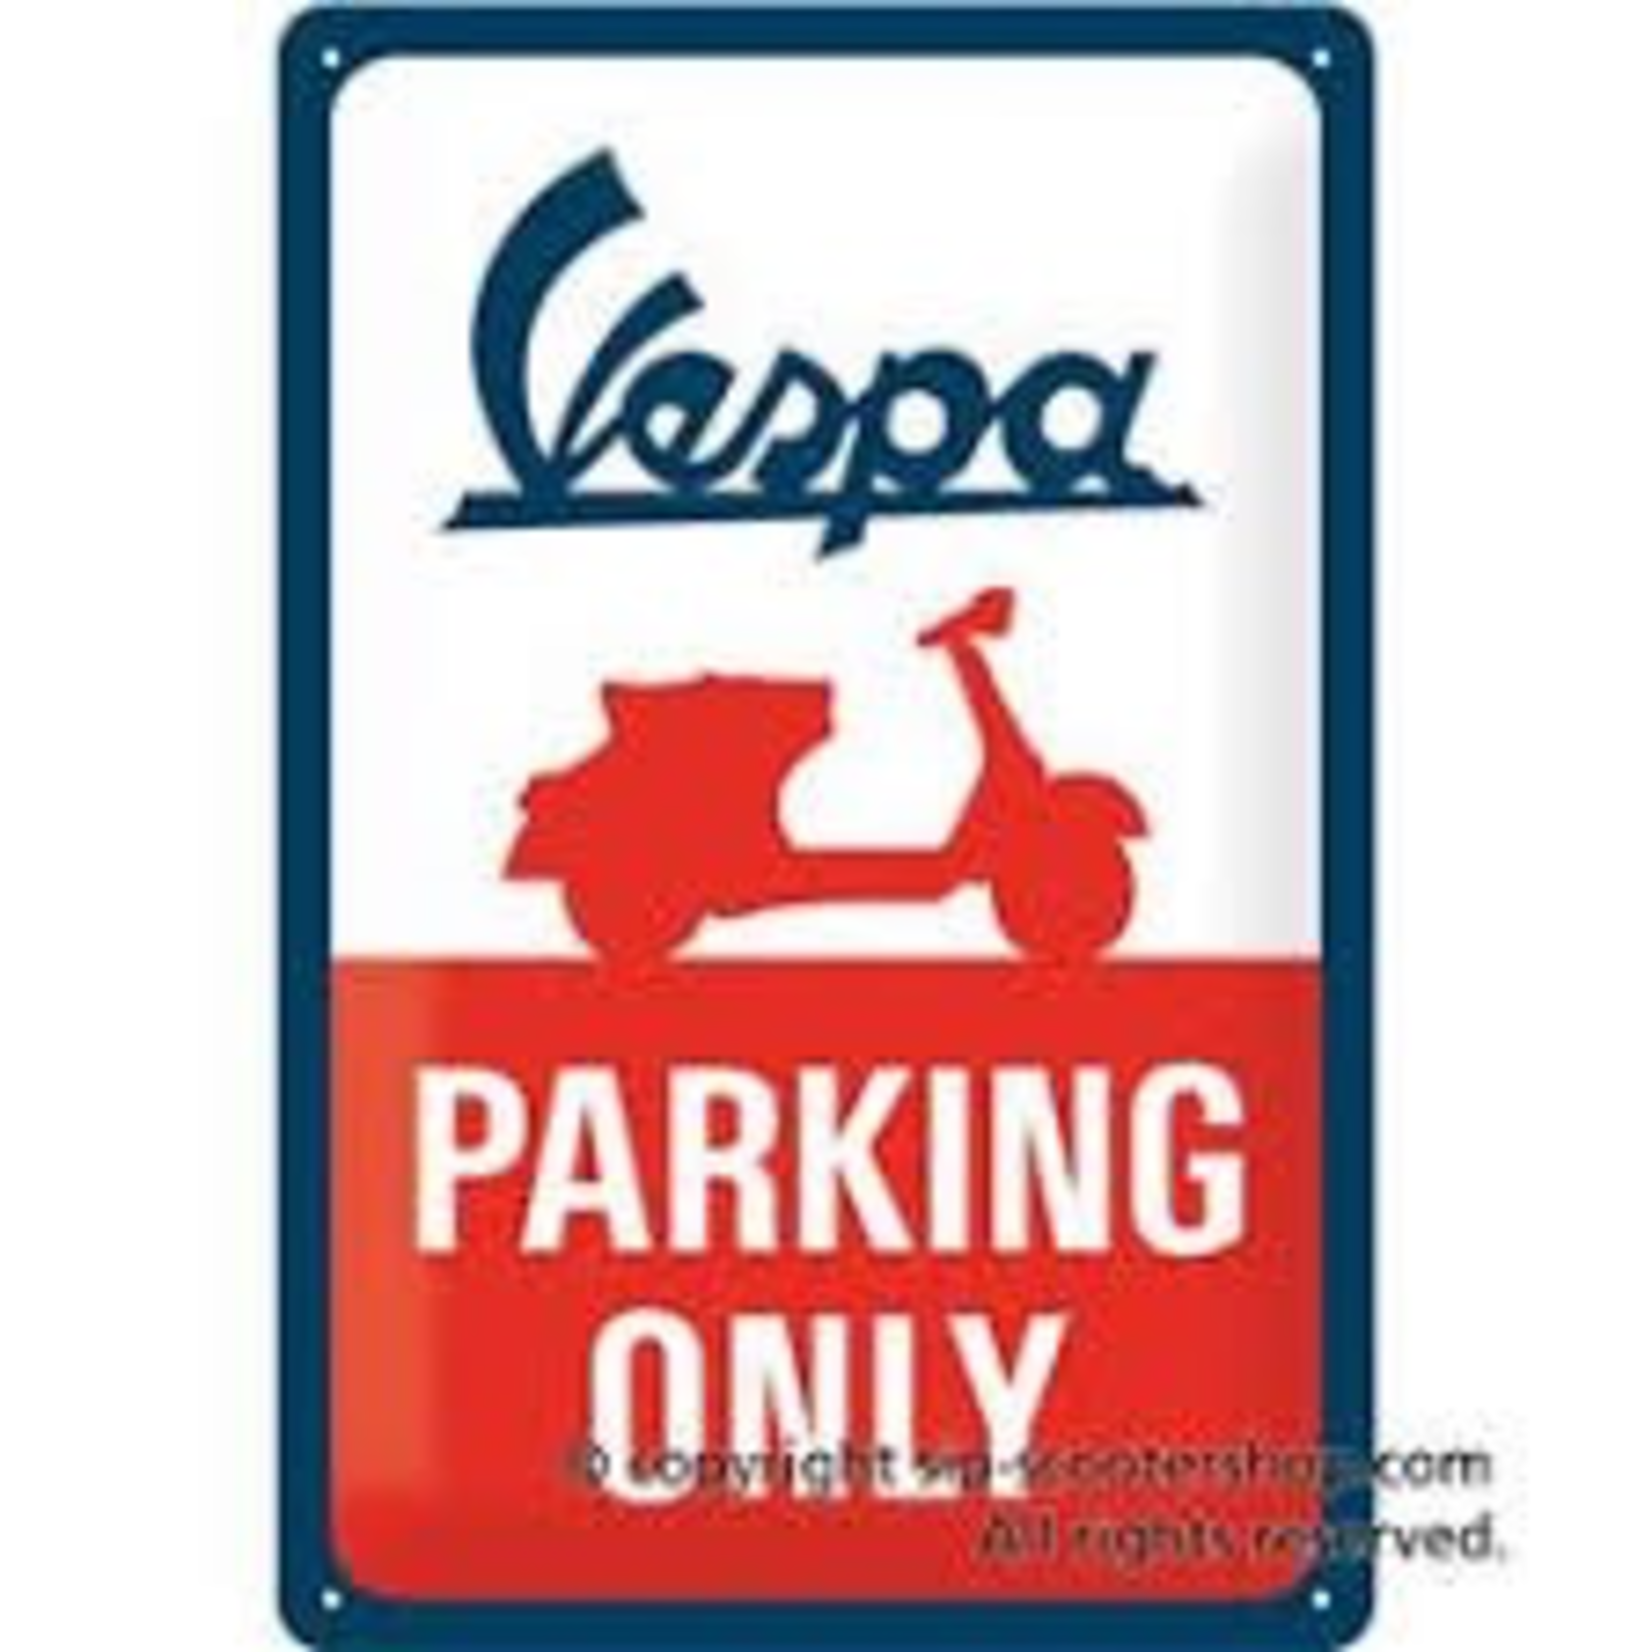 Lifestyle Sign, Metal Vespa Parking Only 20x30cm